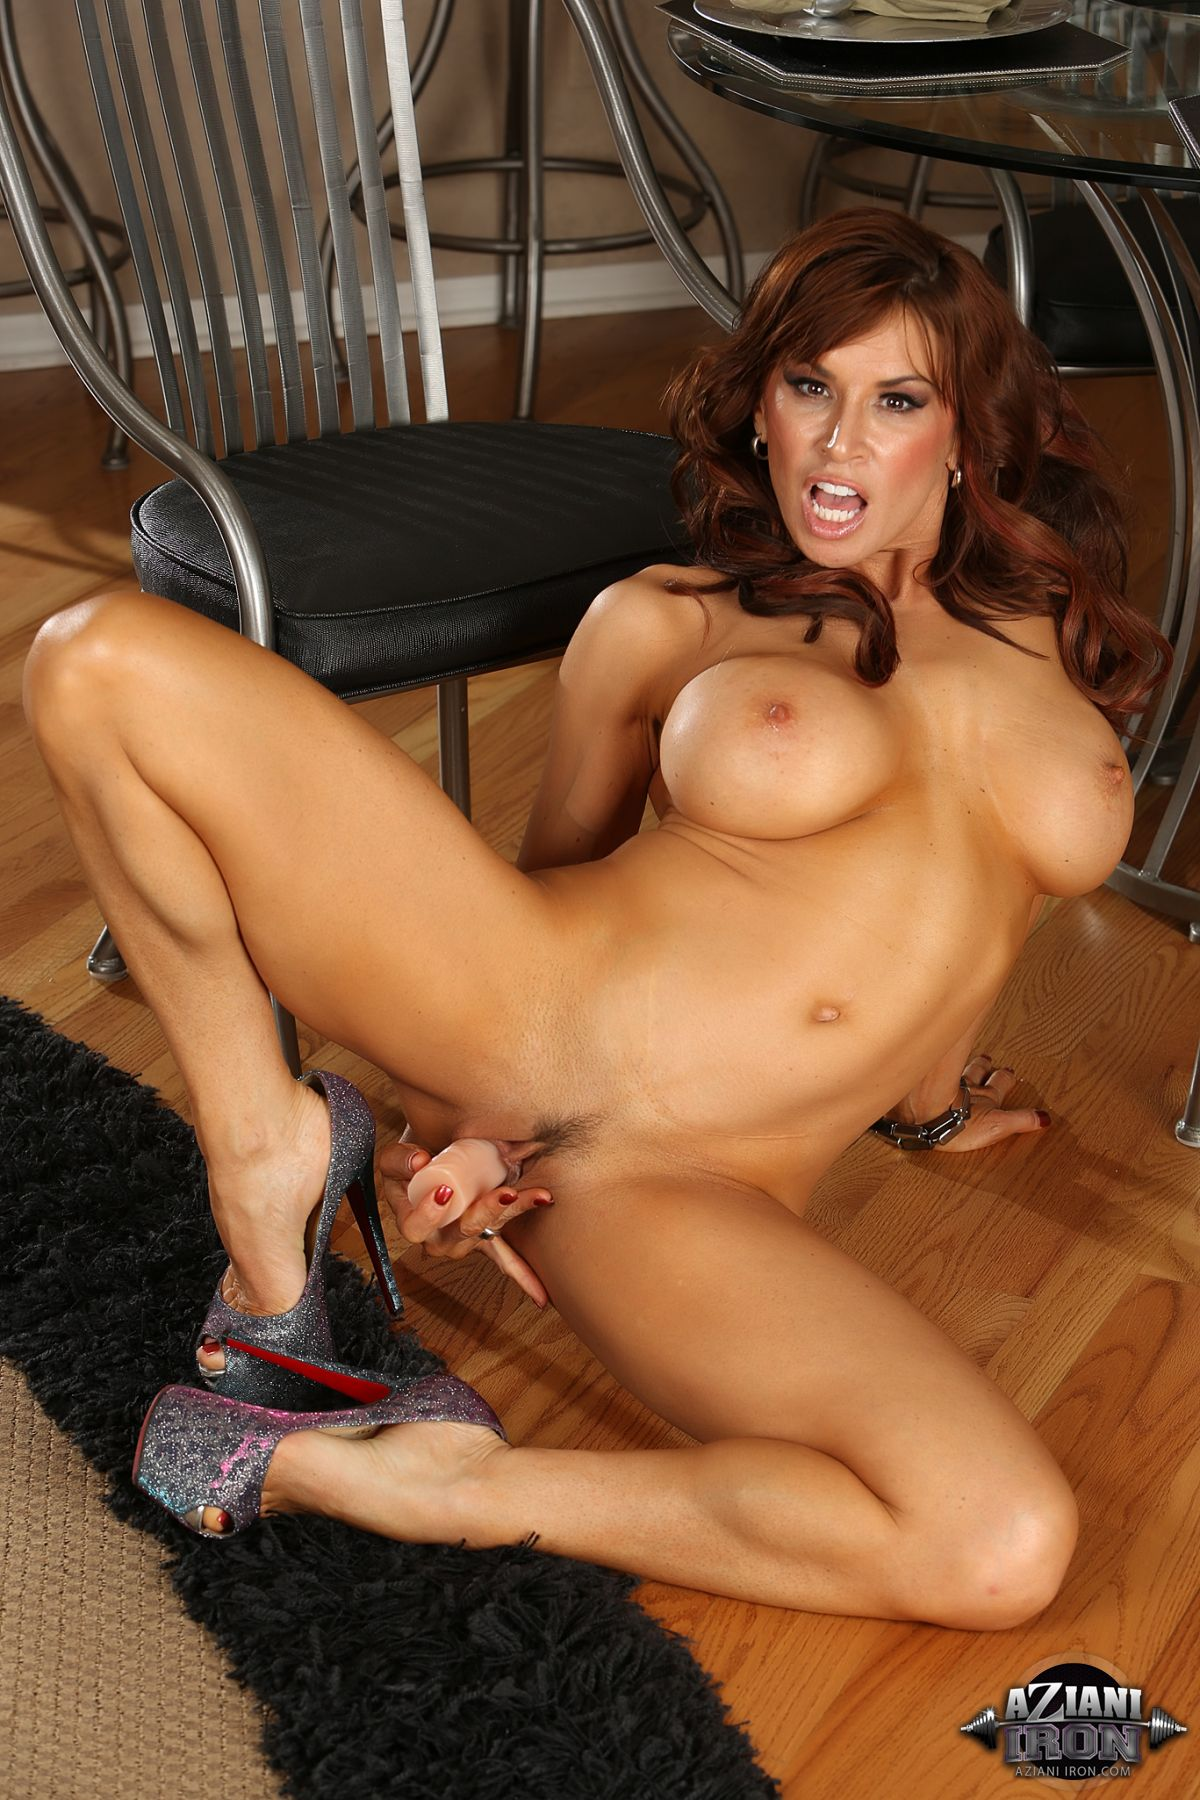 Angela salvagno pumping clit in the gym 3